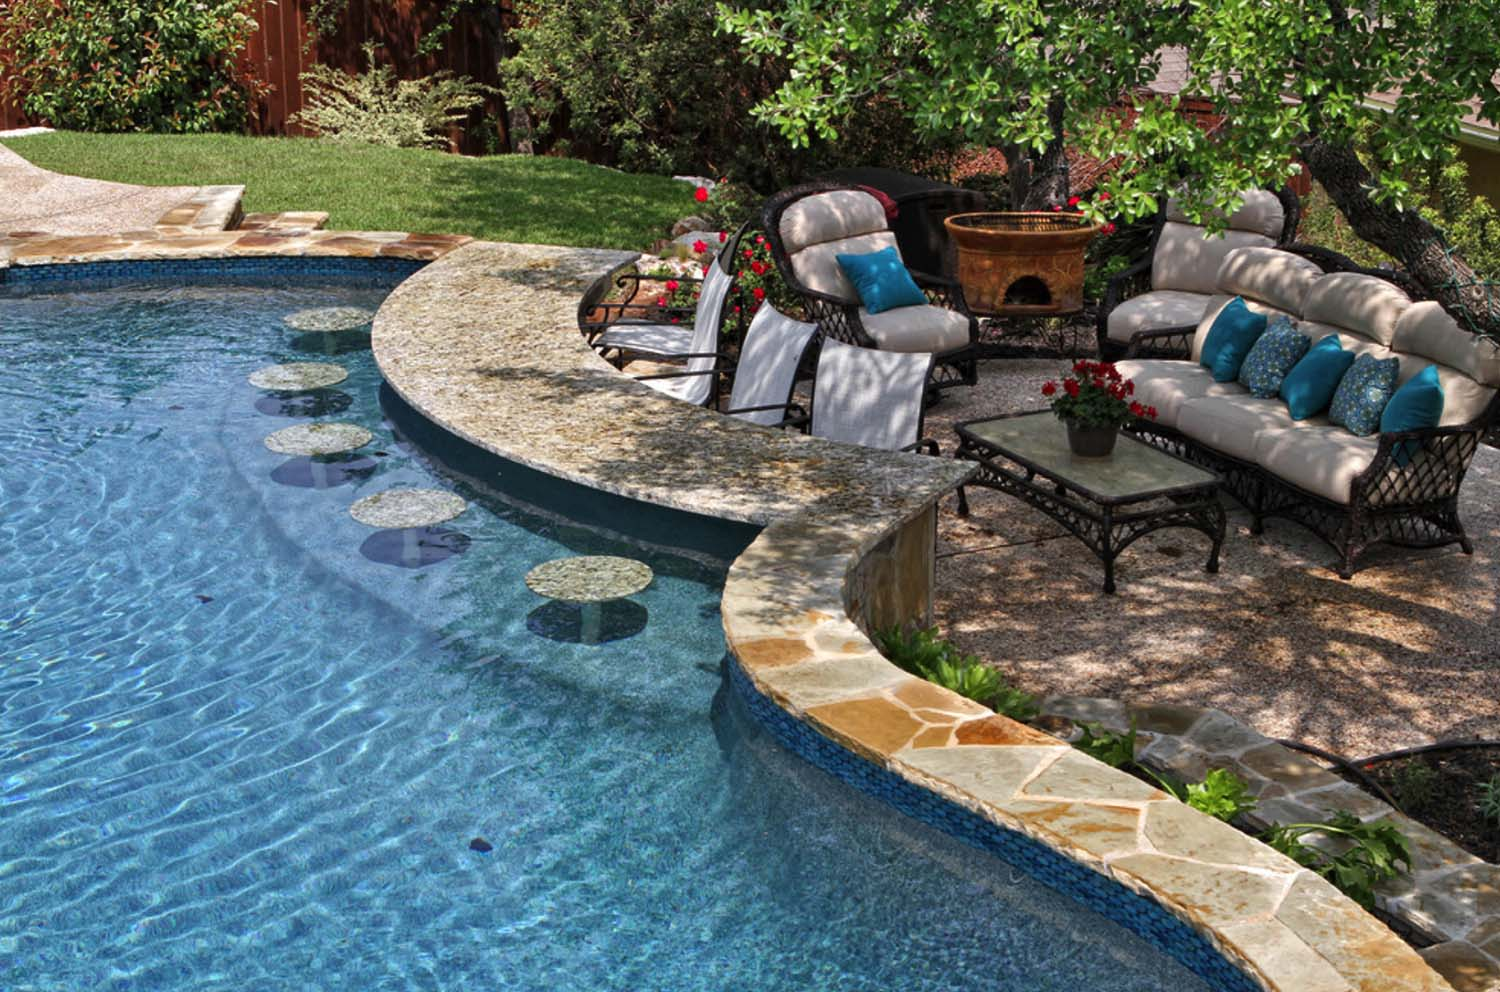 Cool Backyard Pool Designs for Your Outdoor Space: Backyard Pool Designs | Inground Pool Ideas | Cost Of A Small Inground Pool